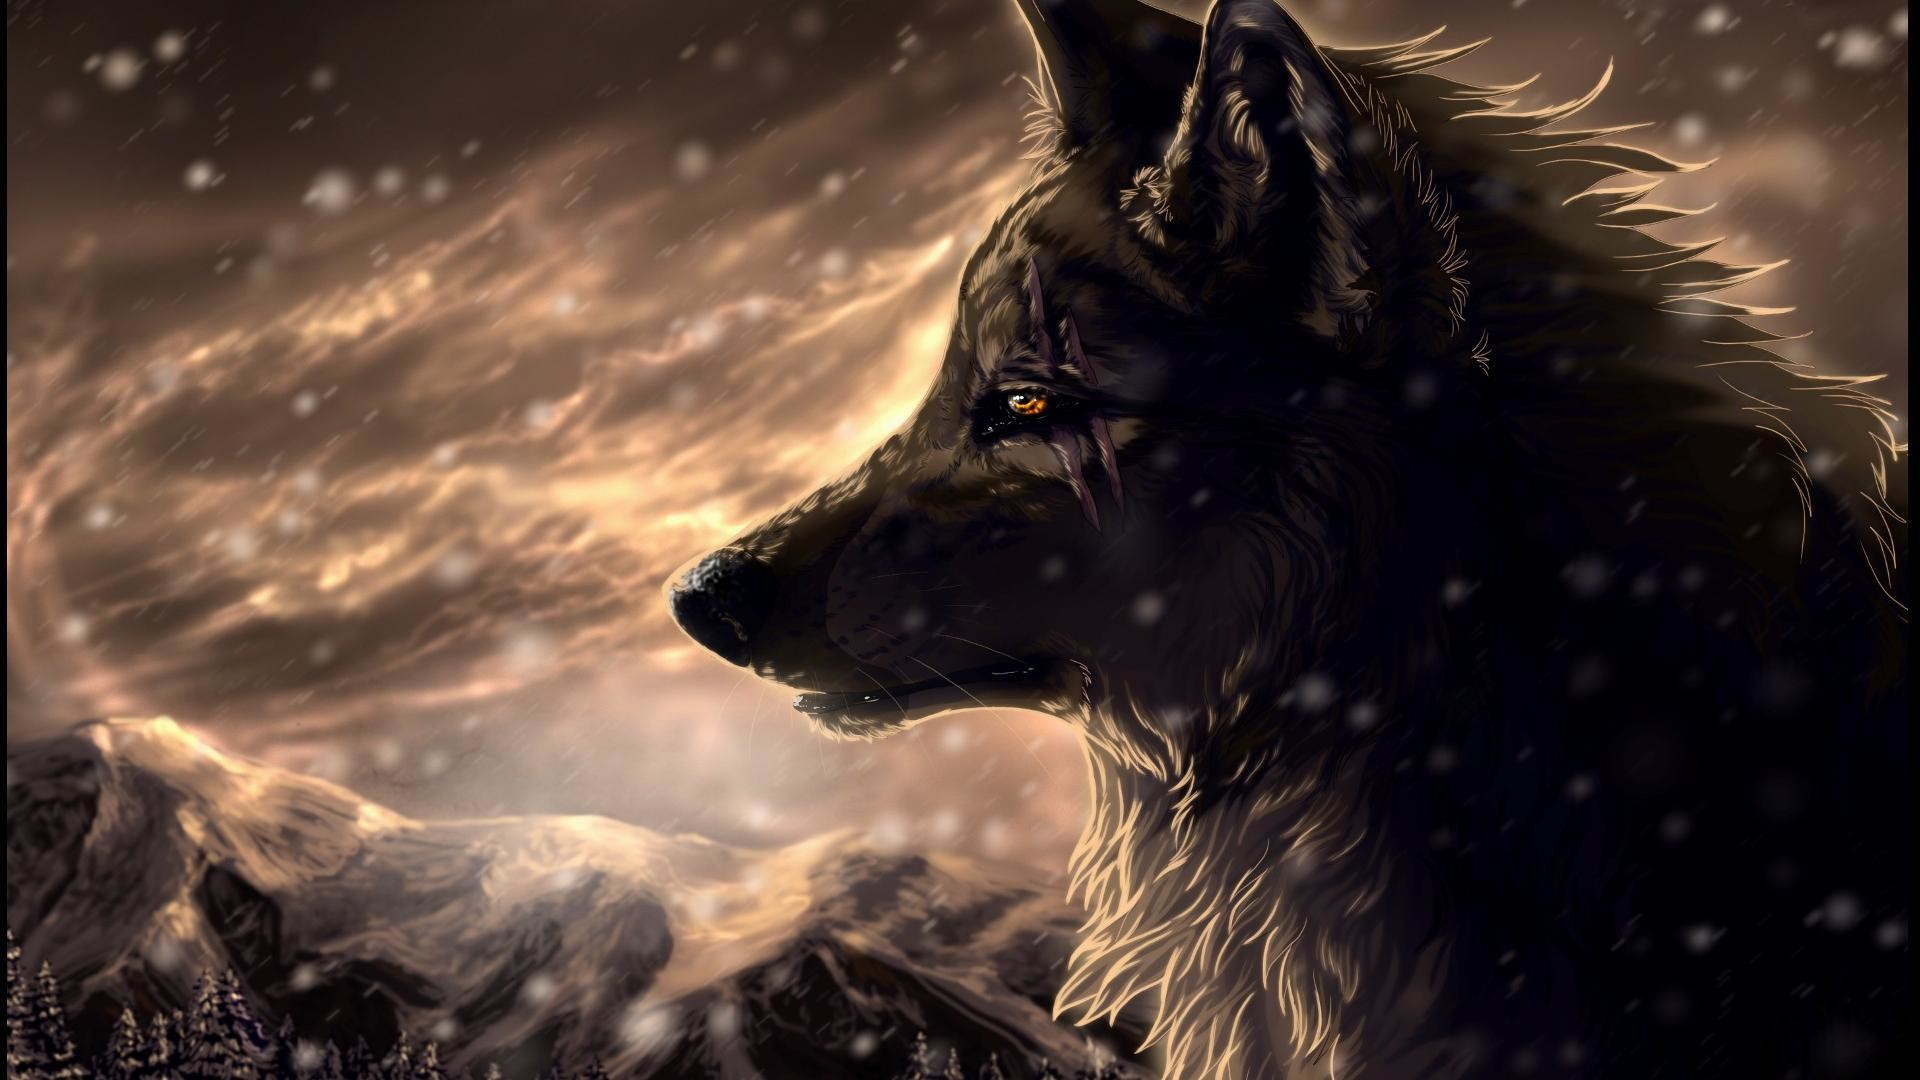 Collection of Cool Anime Hd Wallpapers on HDWallpapers Anime Hd Wallpapers  Wallpapers). Fantasy Wolf …